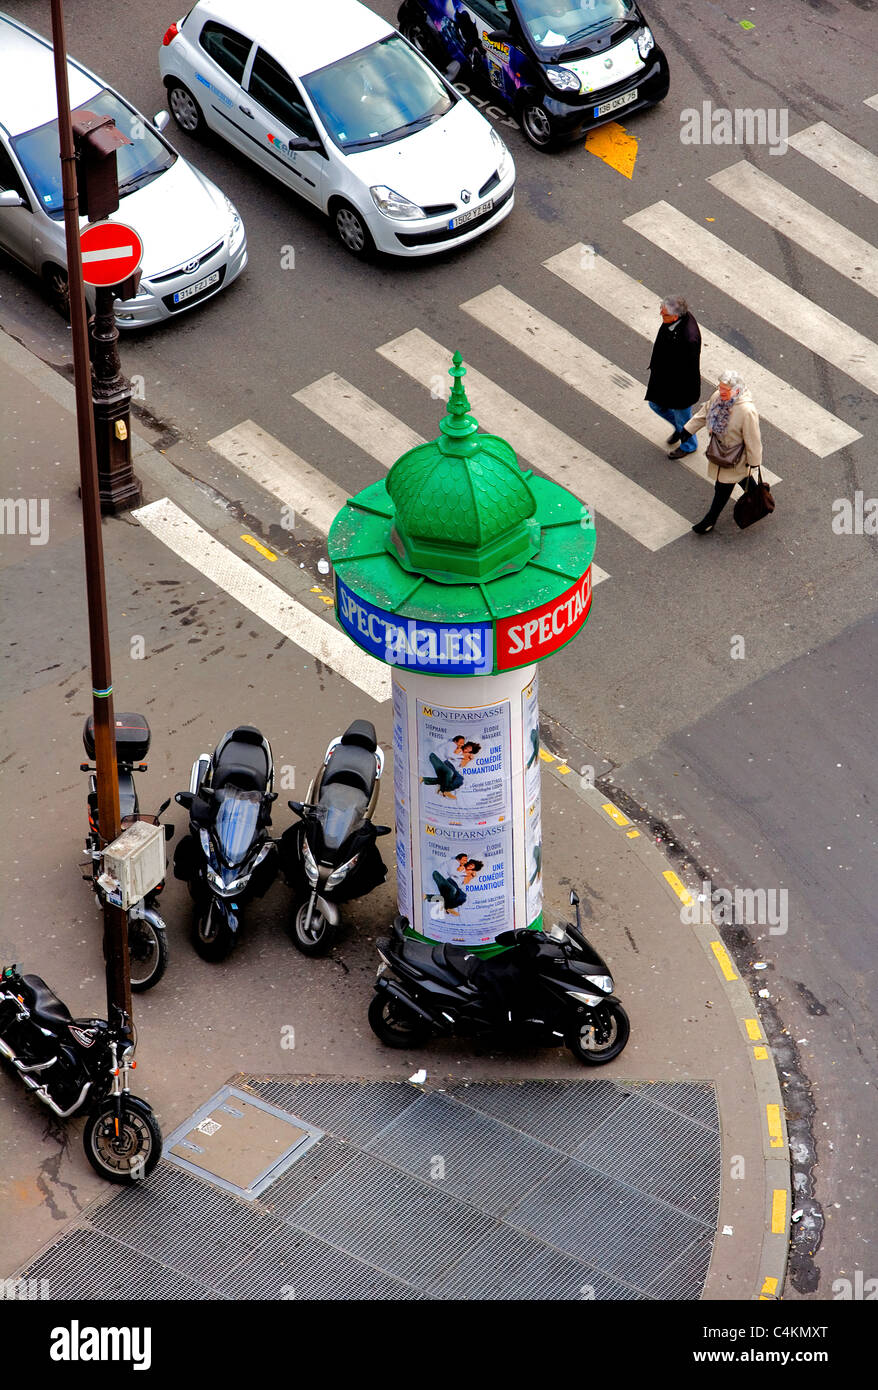 Street scene from roof of Galerie Lafayette, Paris, France, Europe - Stock Image